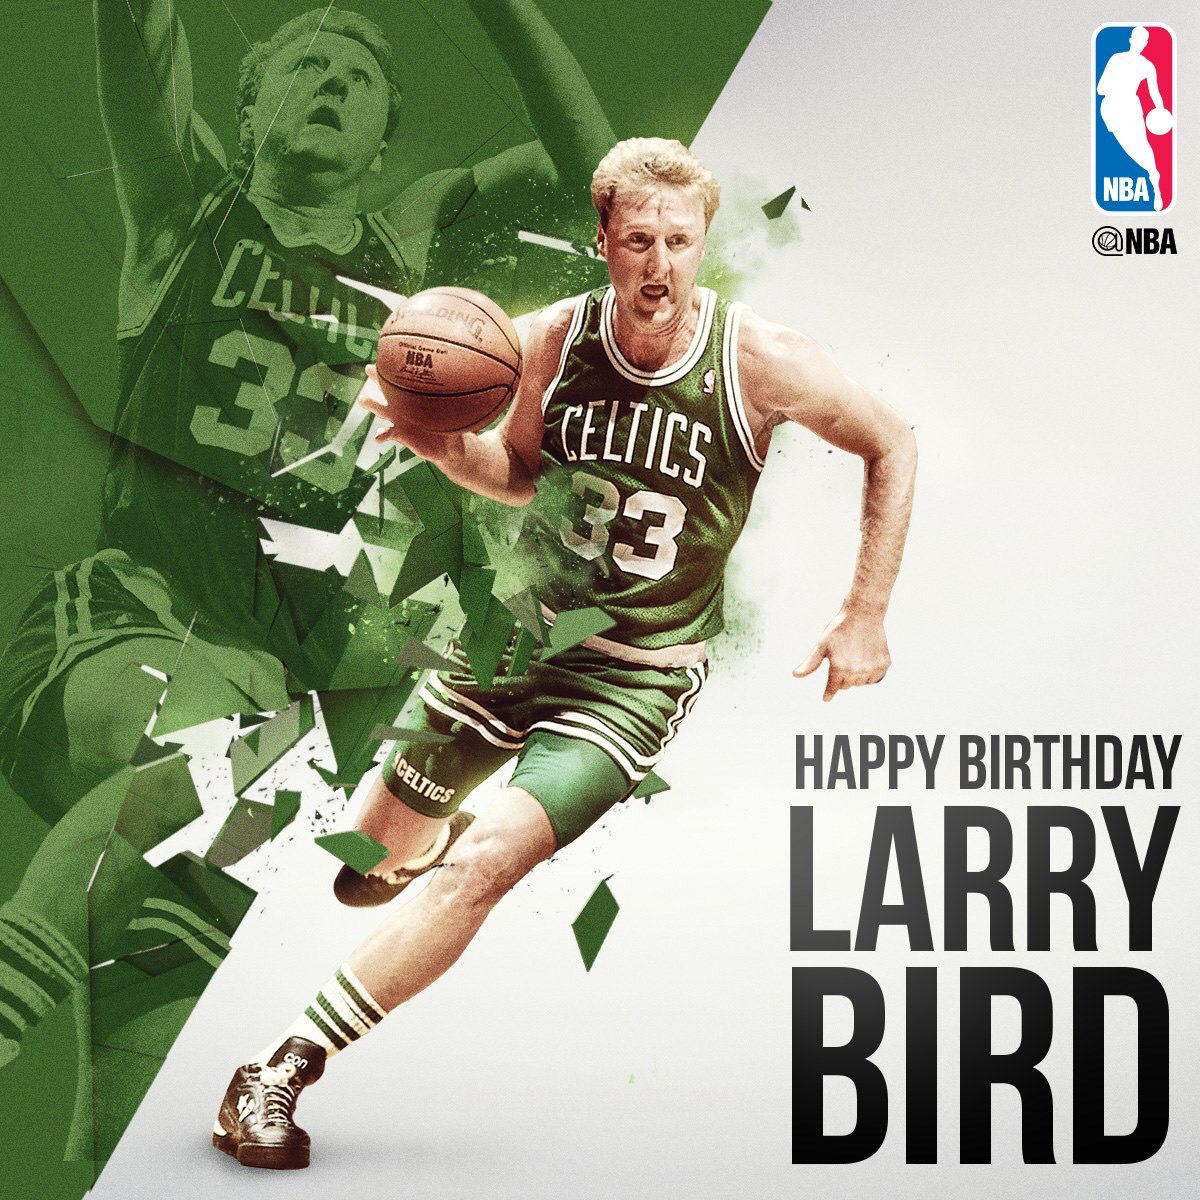 Happy Birthday Larry. one of the great basketball players